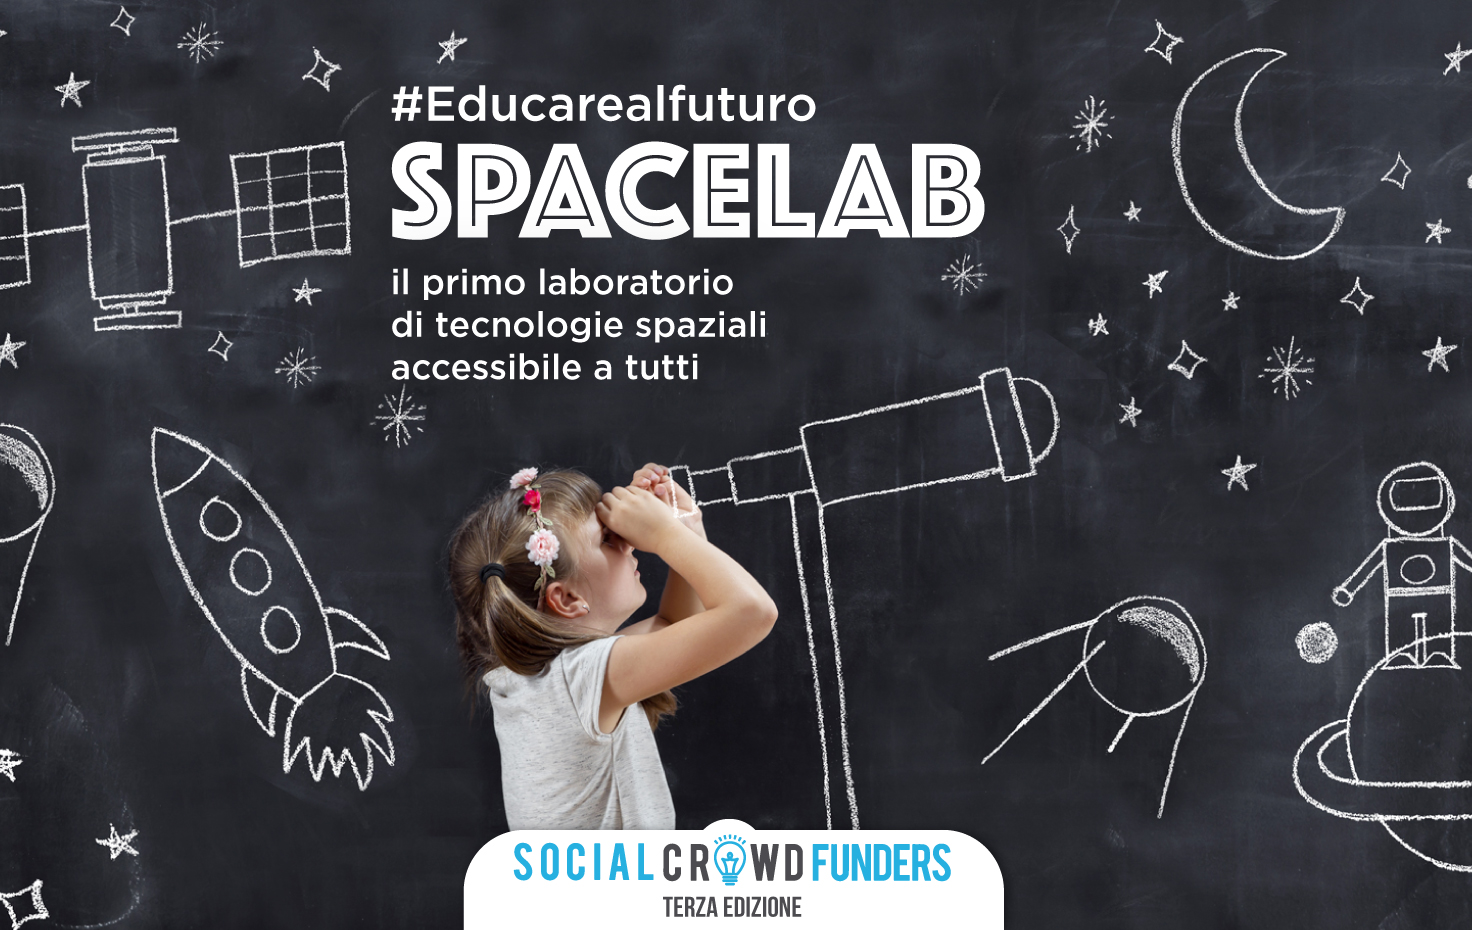 SPACELAB - #EDUCAREALFUTURO